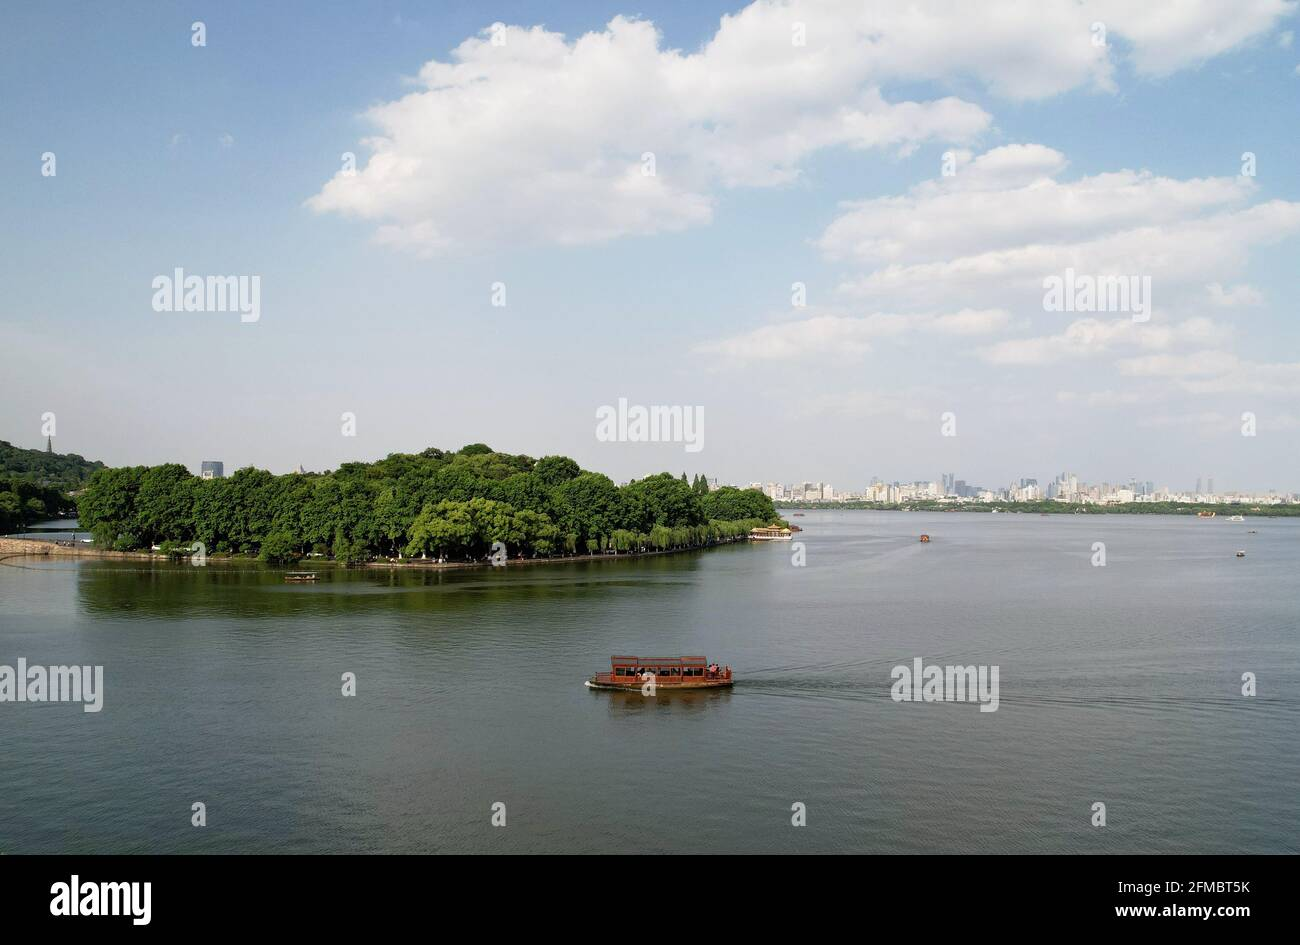 Hangzhou. 7th May, 2021. Aerial photo taken on May 7, 2021 shows a view of the West Lake scenic area in Hangzhou, capital of east China's Zhejiang Province. Credit: Long Wei/Xinhua/Alamy Live News Stock Photo